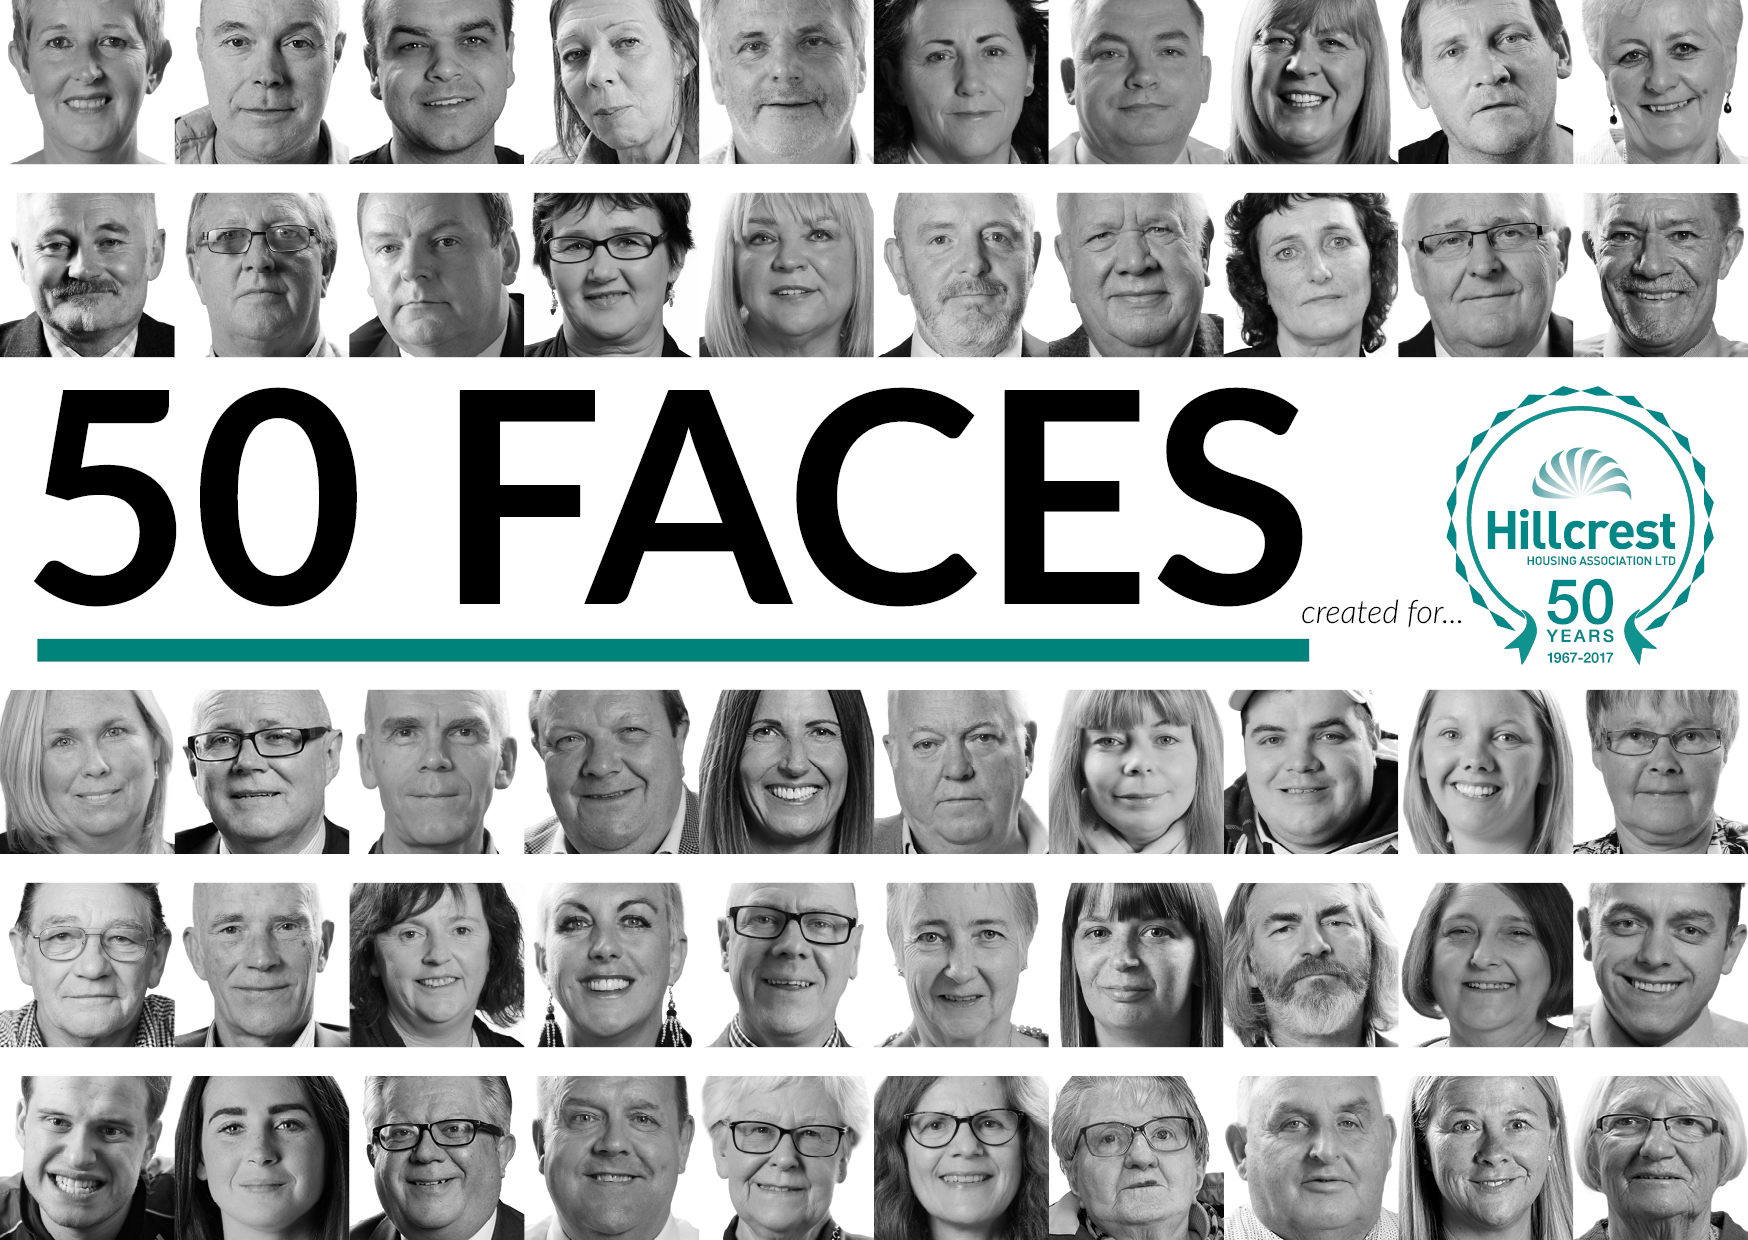 50 Faces of Hillcrest